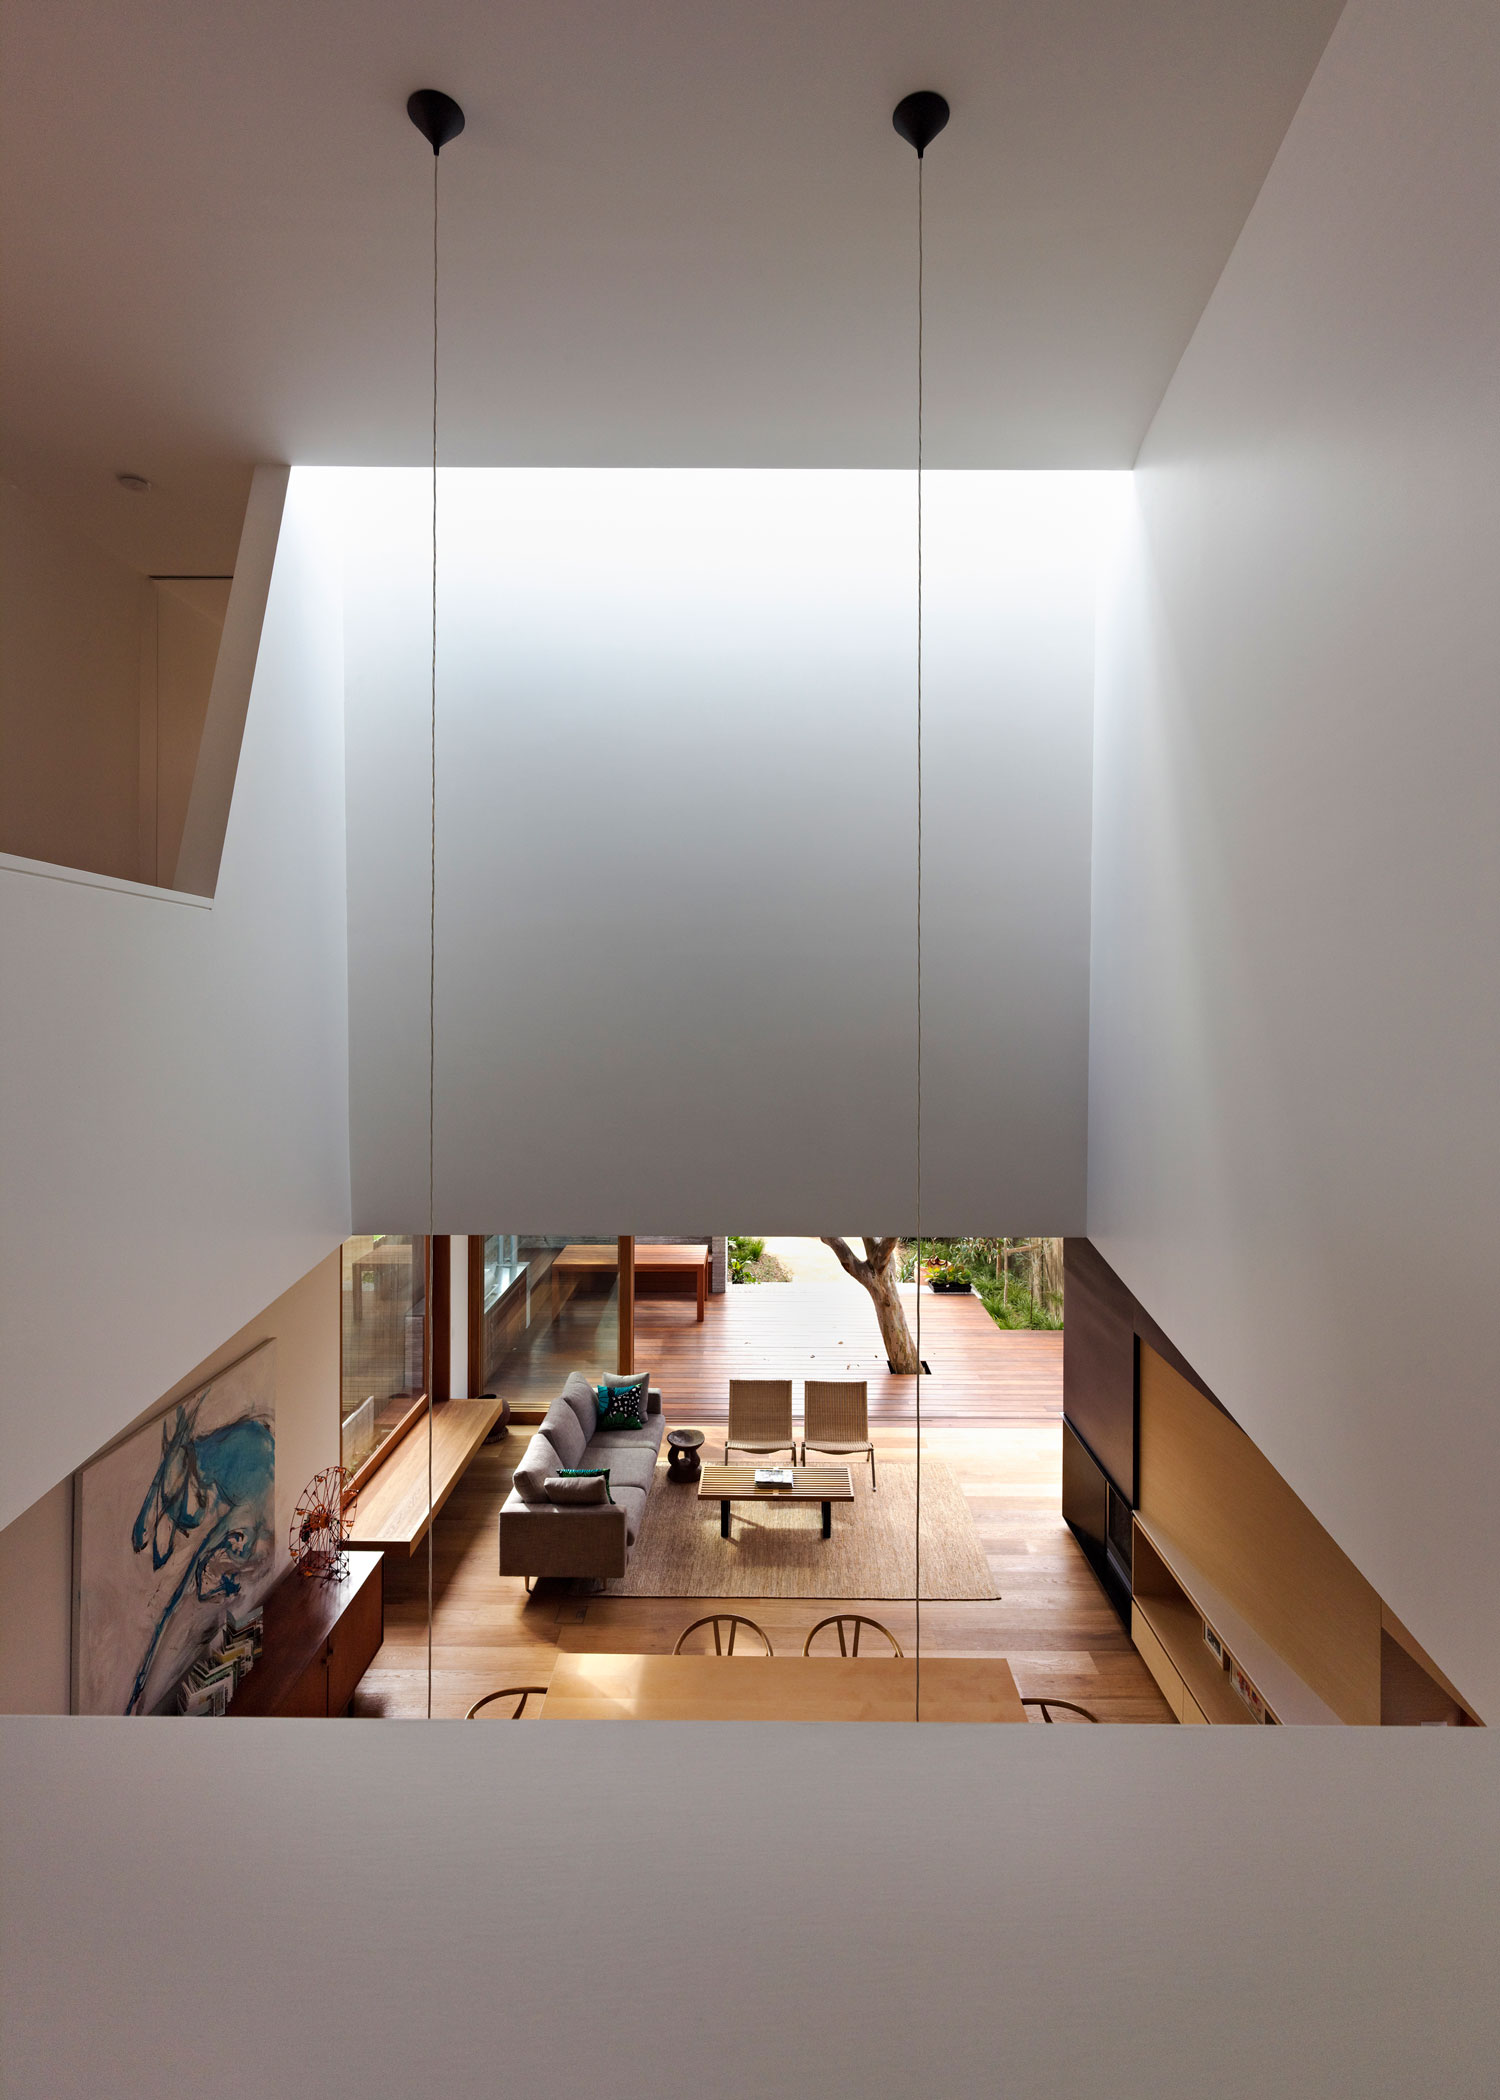 Andrew Burgess Architects Chose To Take The Path Less Travelled